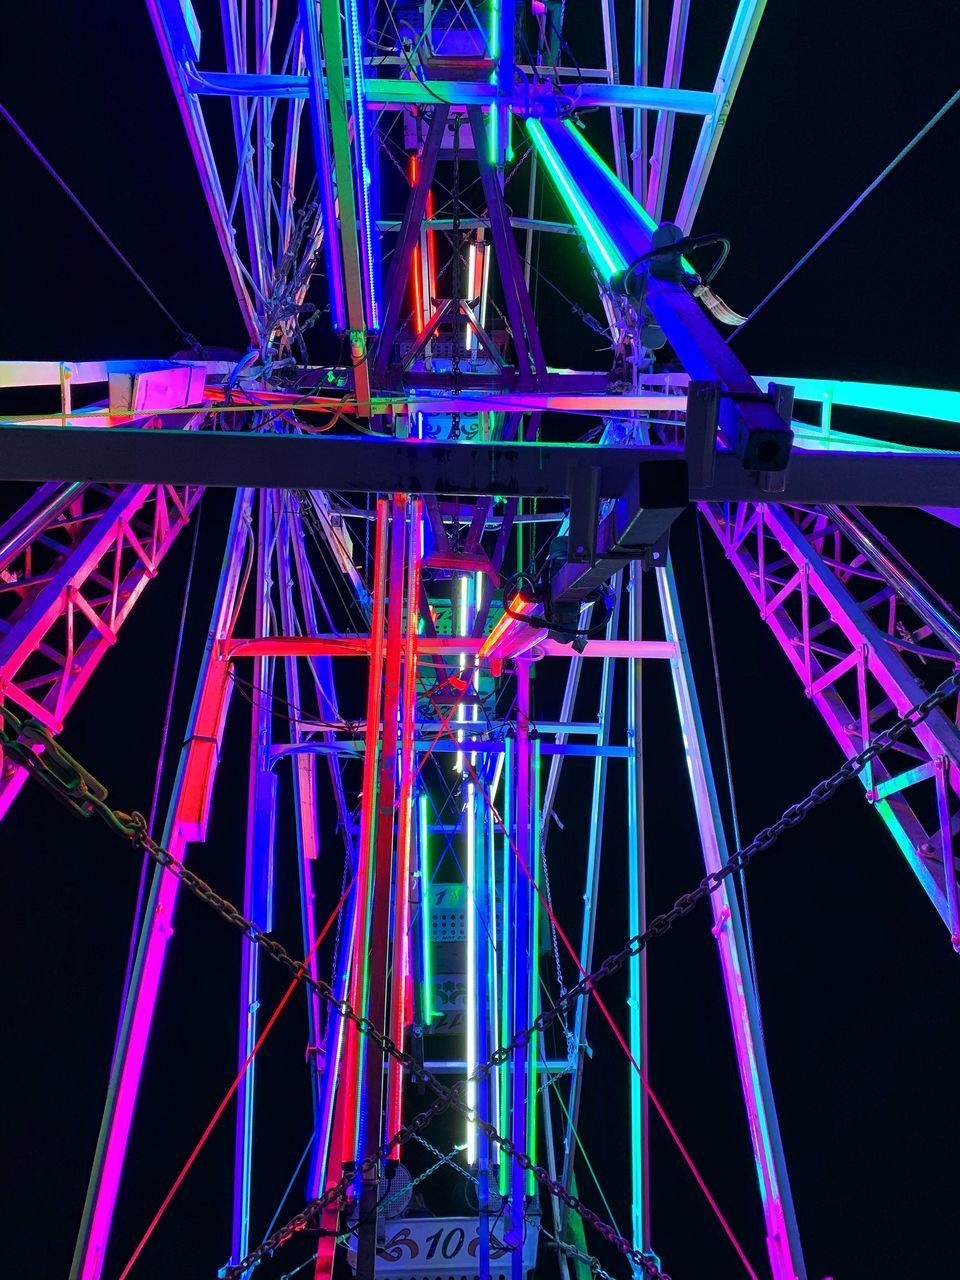 illuminated, night, built structure, architecture, metal, connection, glowing, arts culture and entertainment, no people, blue, bridge, amusement park, lighting equipment, amusement park ride, ferris wheel, low angle view, bridge - man made structure, multi colored, travel destinations, nightlife, laser, purple